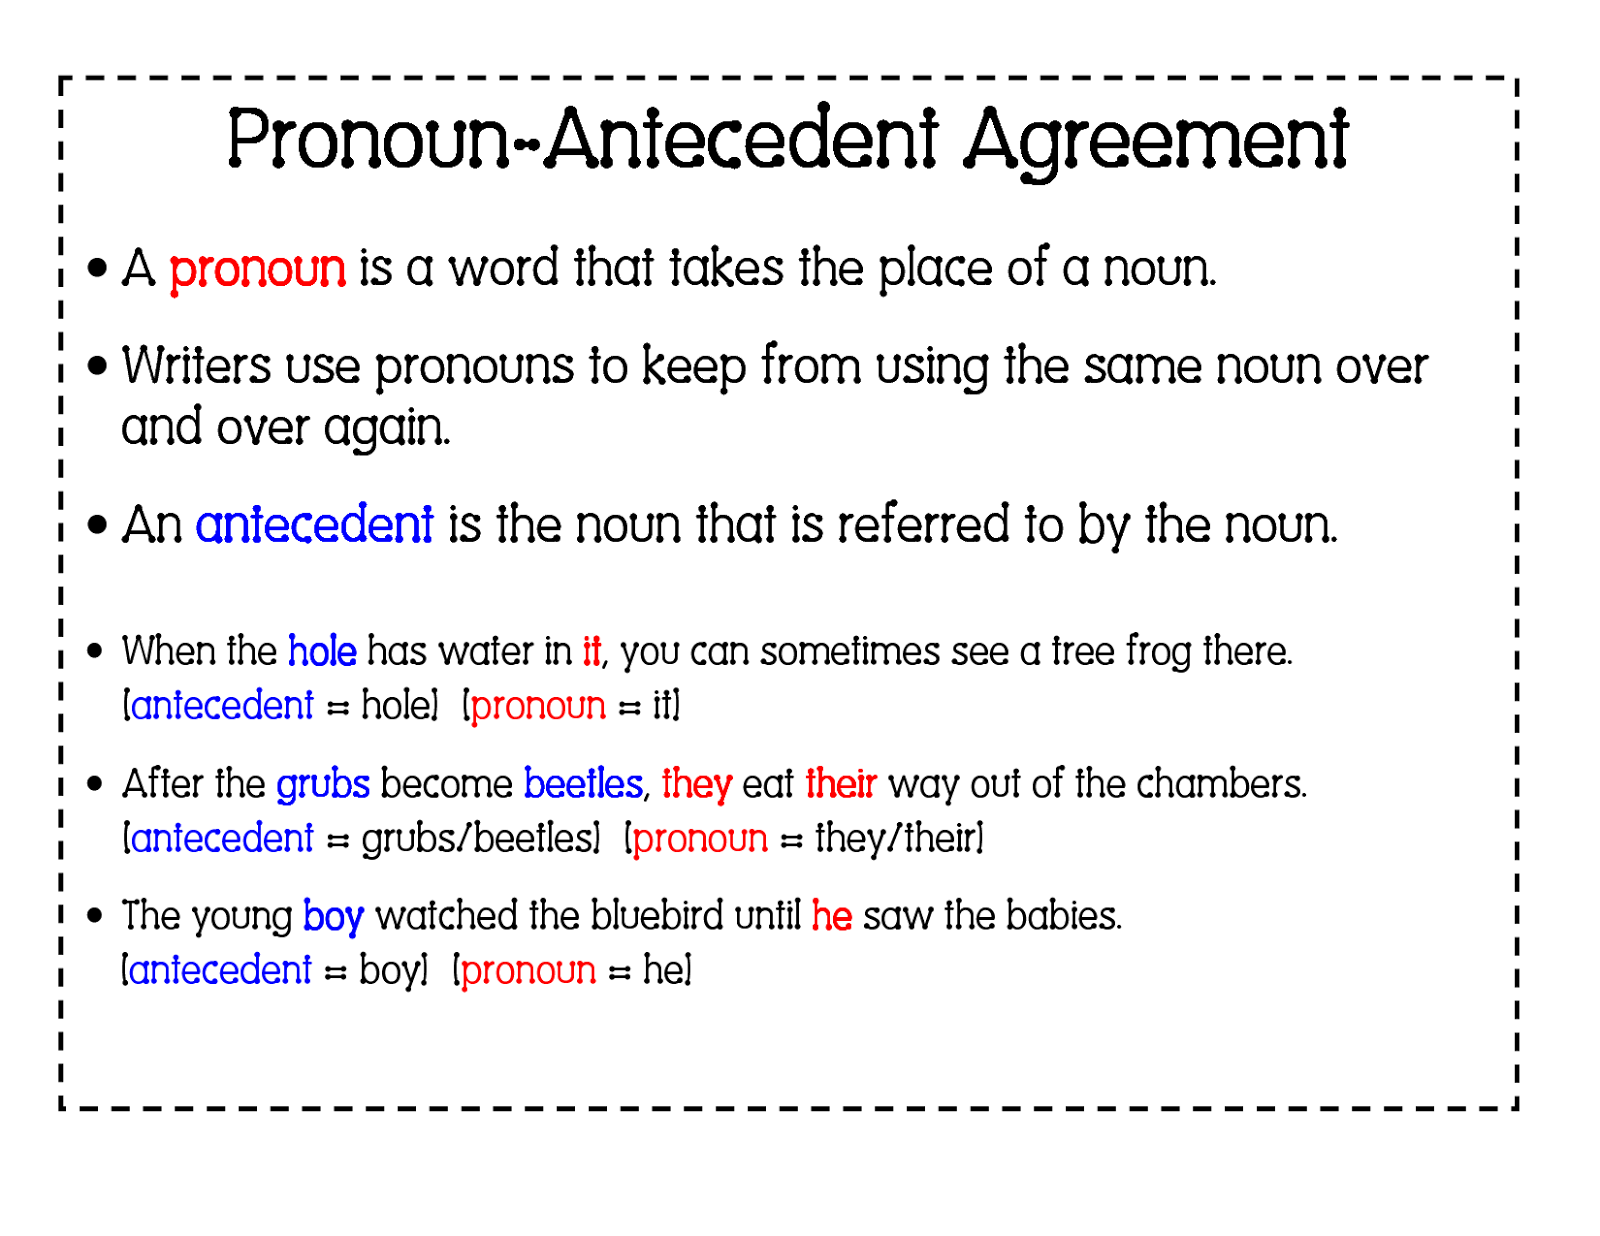 Printables Pronoun Antecedent Agreement Worksheet 6th grade english with mr t pronoun antecedent agreement part 2 2